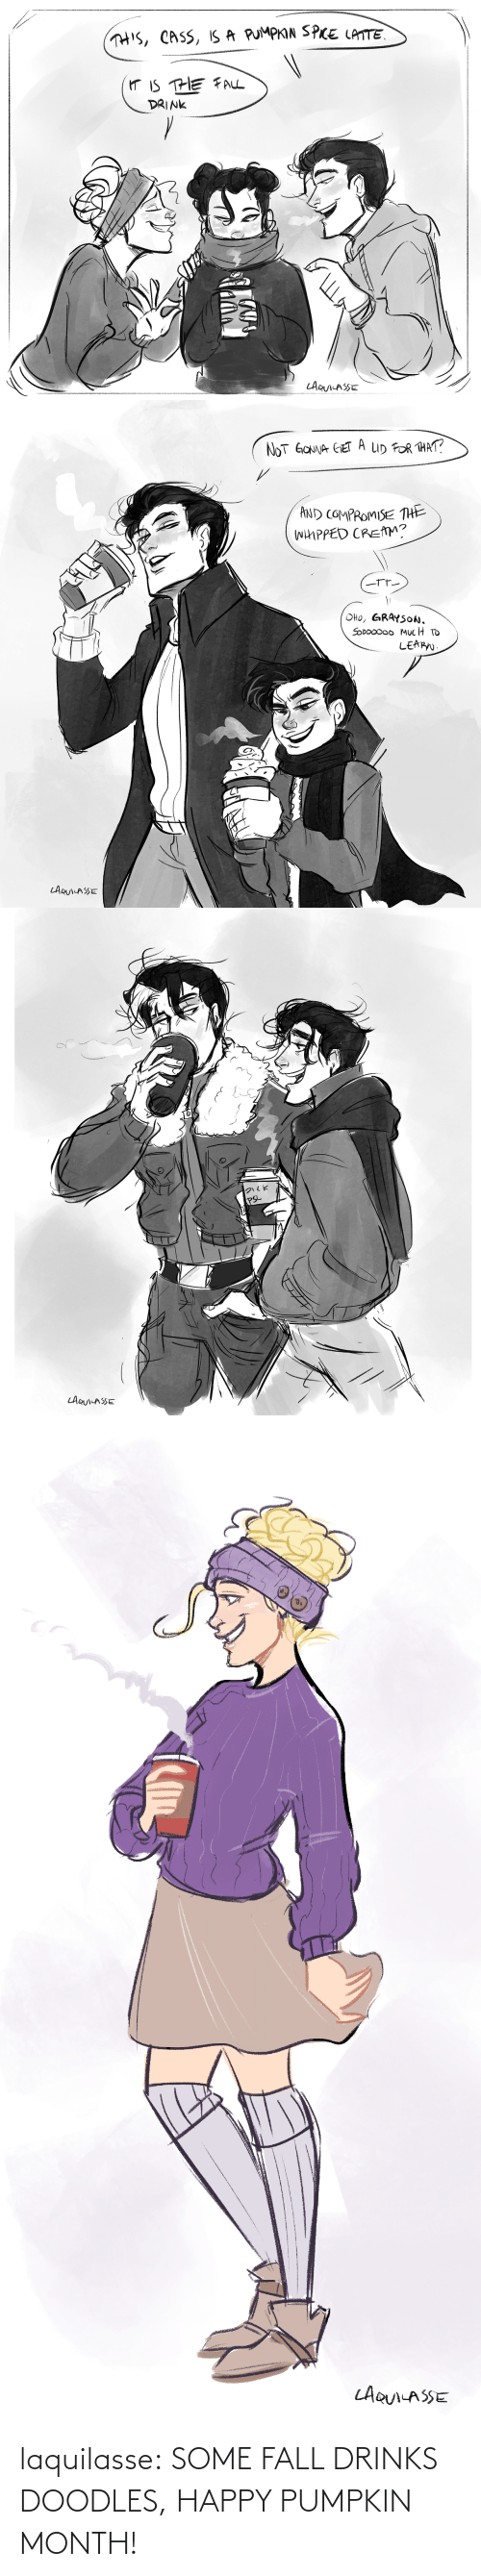 Some: laquilasse:  SOME FALL DRINKS DOODLES, HAPPY PUMPKIN MONTH!